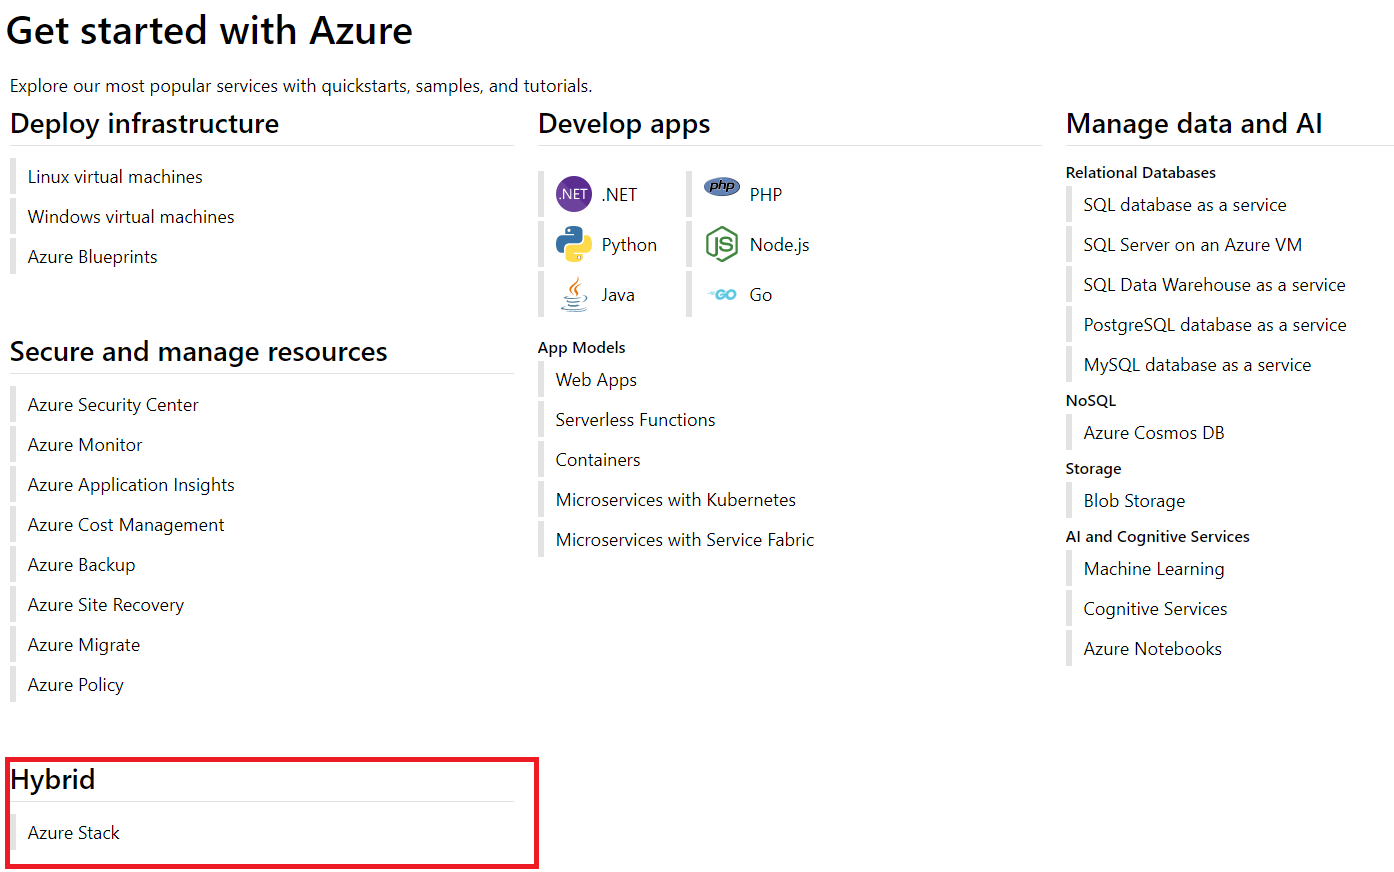 Screenshot of the Get Started with Azure dashboard and Azure Stack under the Hybrib section